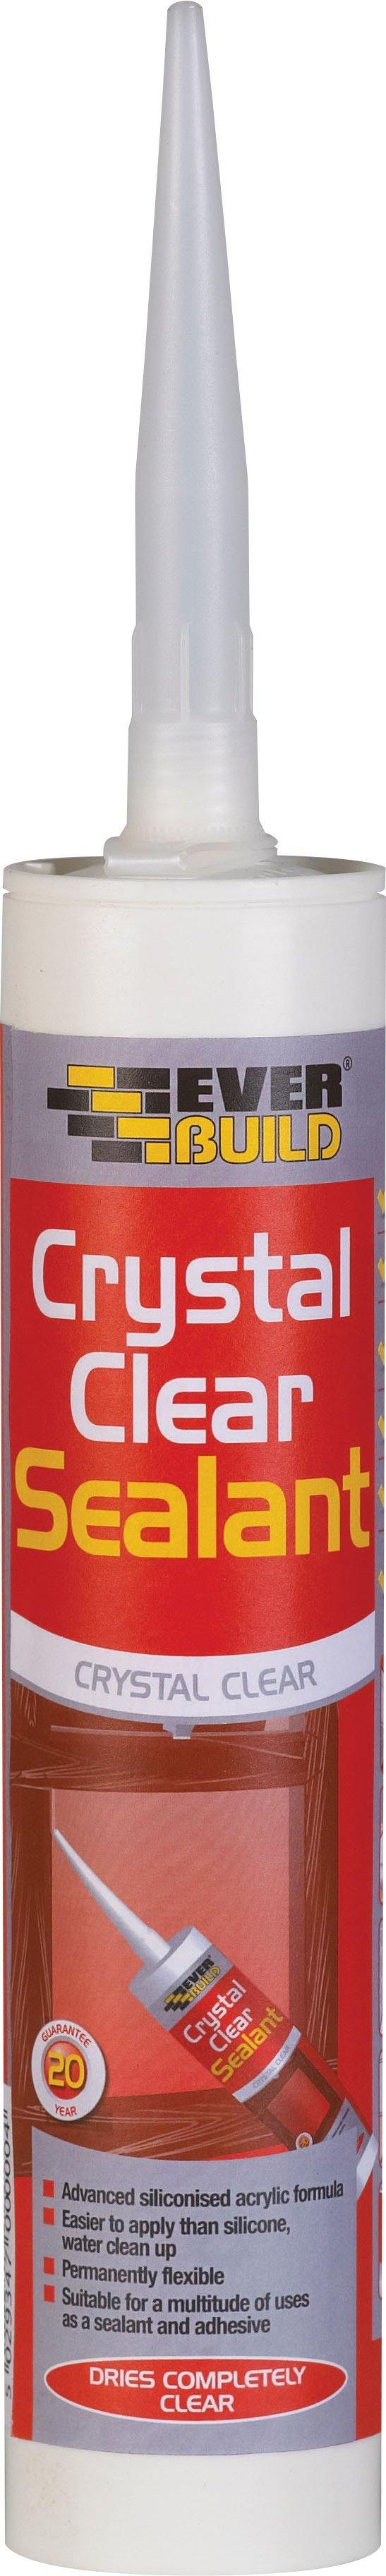 Everbuild Crystal Clear Sealant - HomeFix